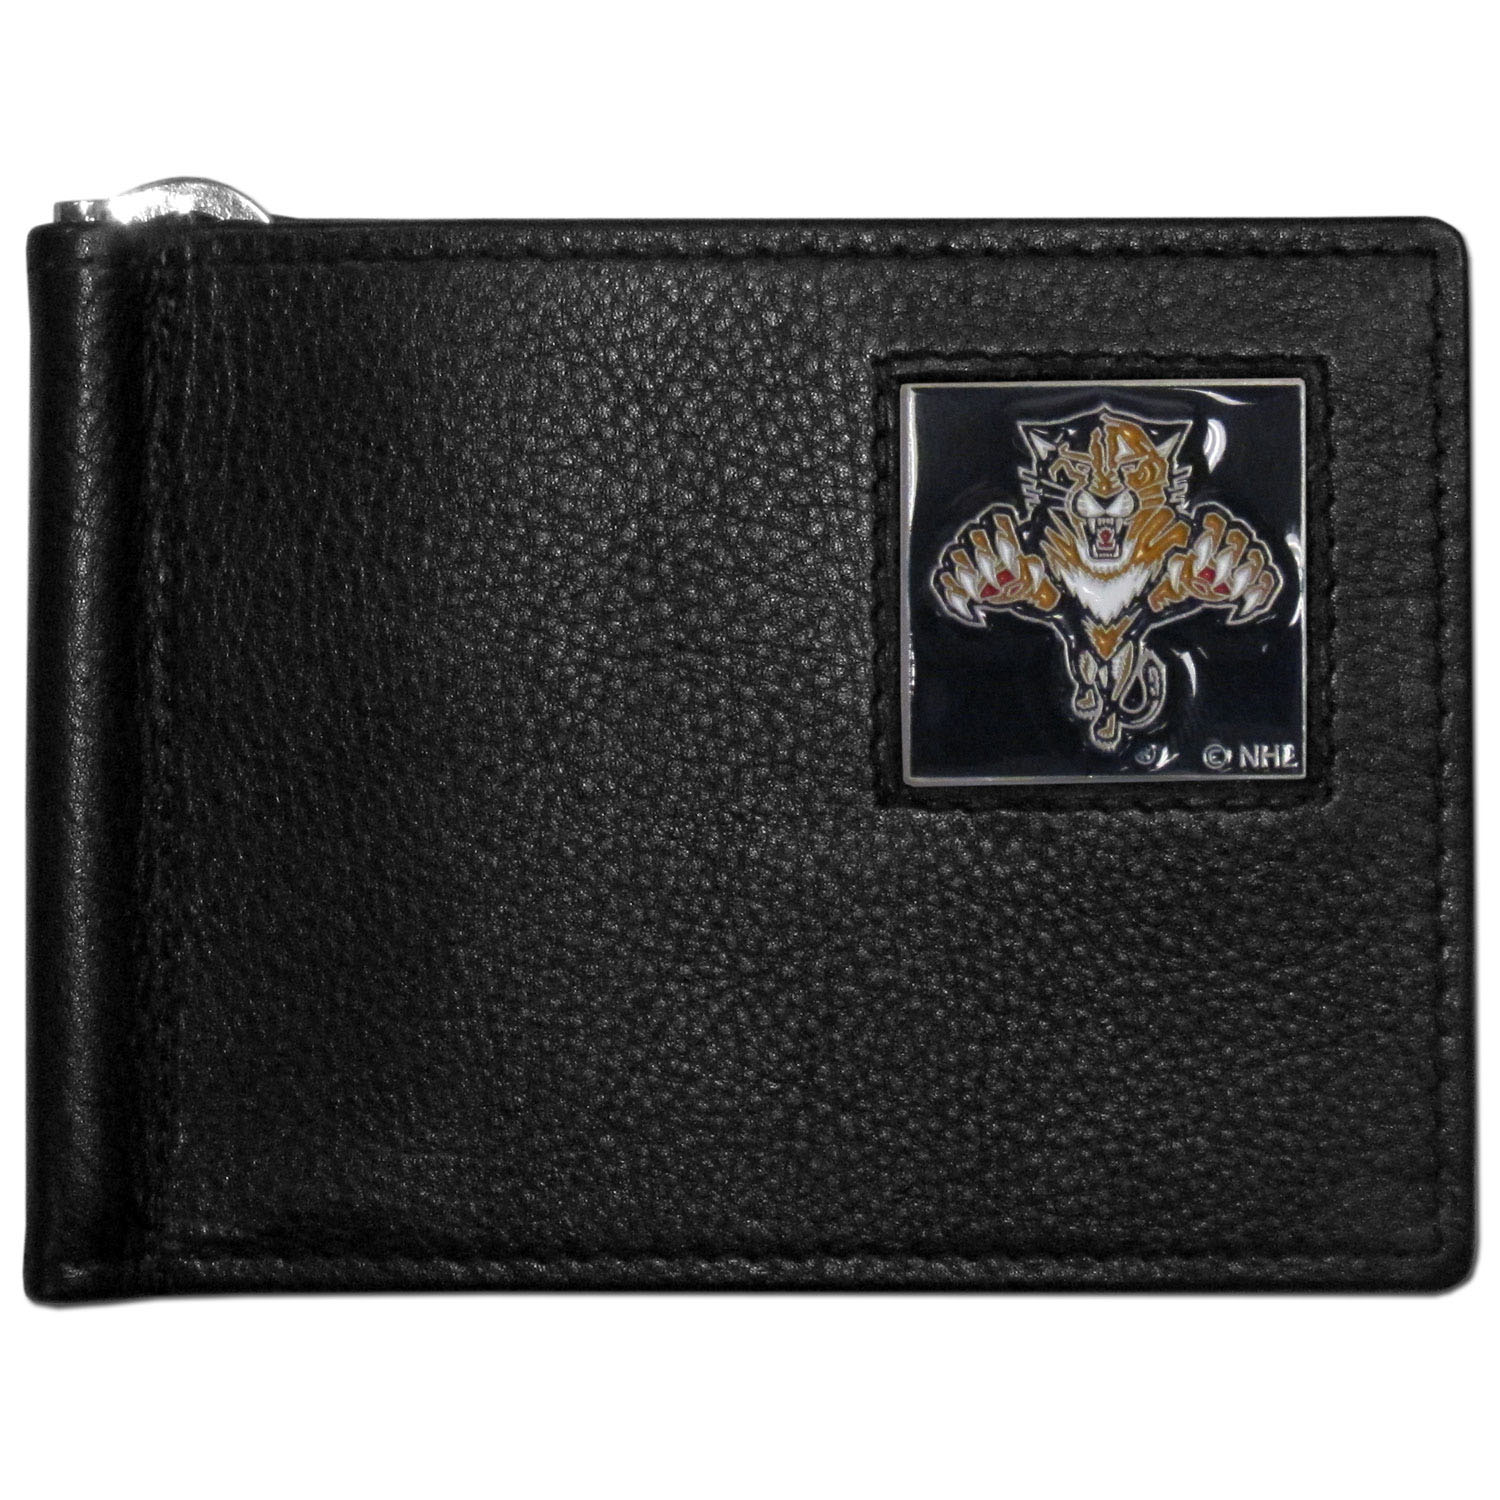 Florida Panthers® Leather Bill Clip Wallet - This cool new style wallet features an inner, metal bill clip that lips up for easy access. The super slim wallet holds tons of stuff with ample pockets, credit card slots & windowed ID slot. The wallet is made of genuine fine grain leather and it finished with a metal Florida Panthers® emblem. The wallet is shipped in gift box packaging.